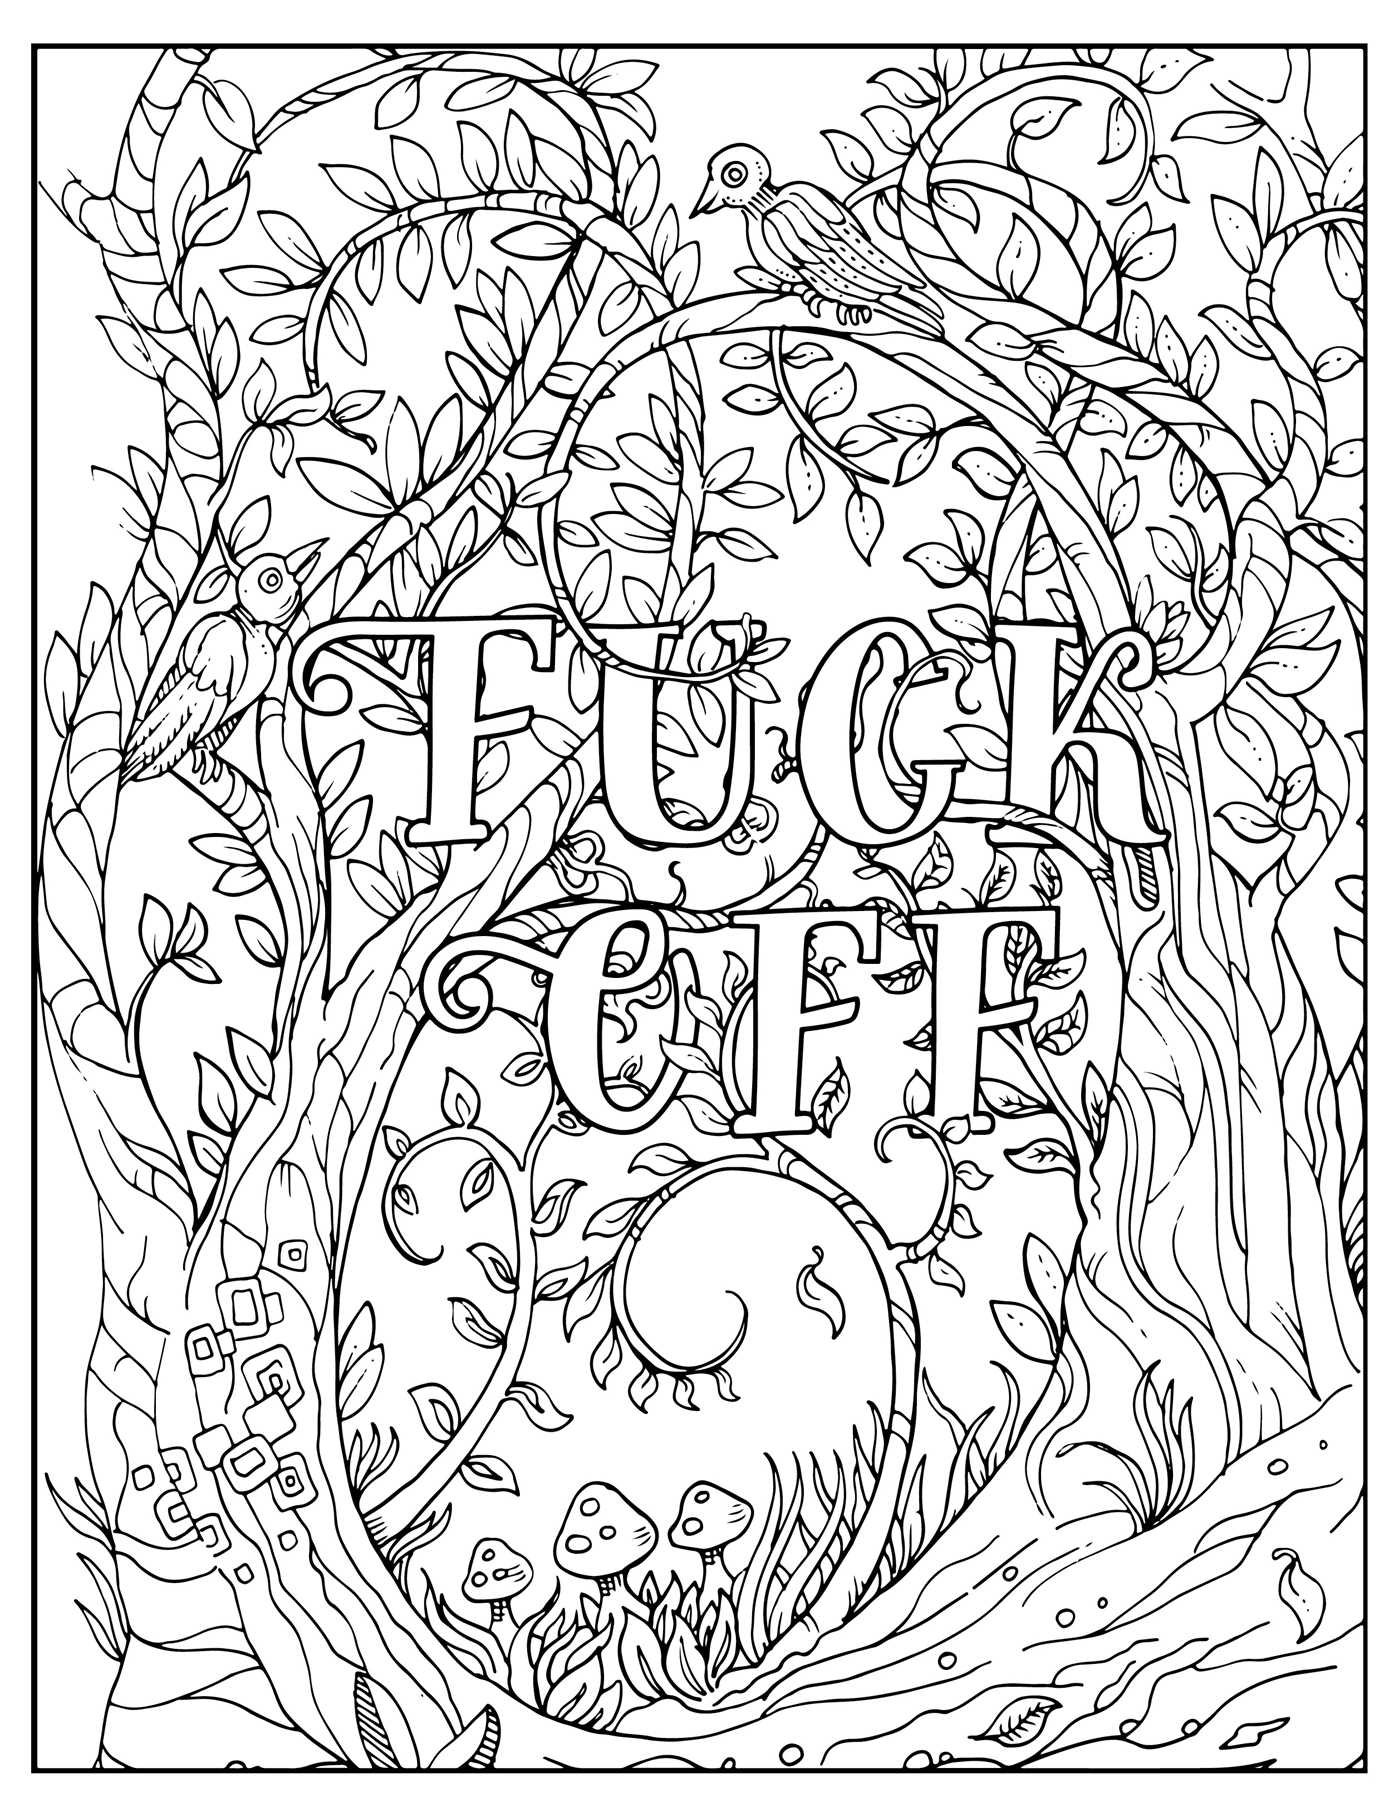 Colouring books for adults vancouver - Fuck Off I M Coloring Unwind With 50 Obnoxiously Fun Swear Word Coloring Pages Amazon Ca Dare You Stamp Co Books